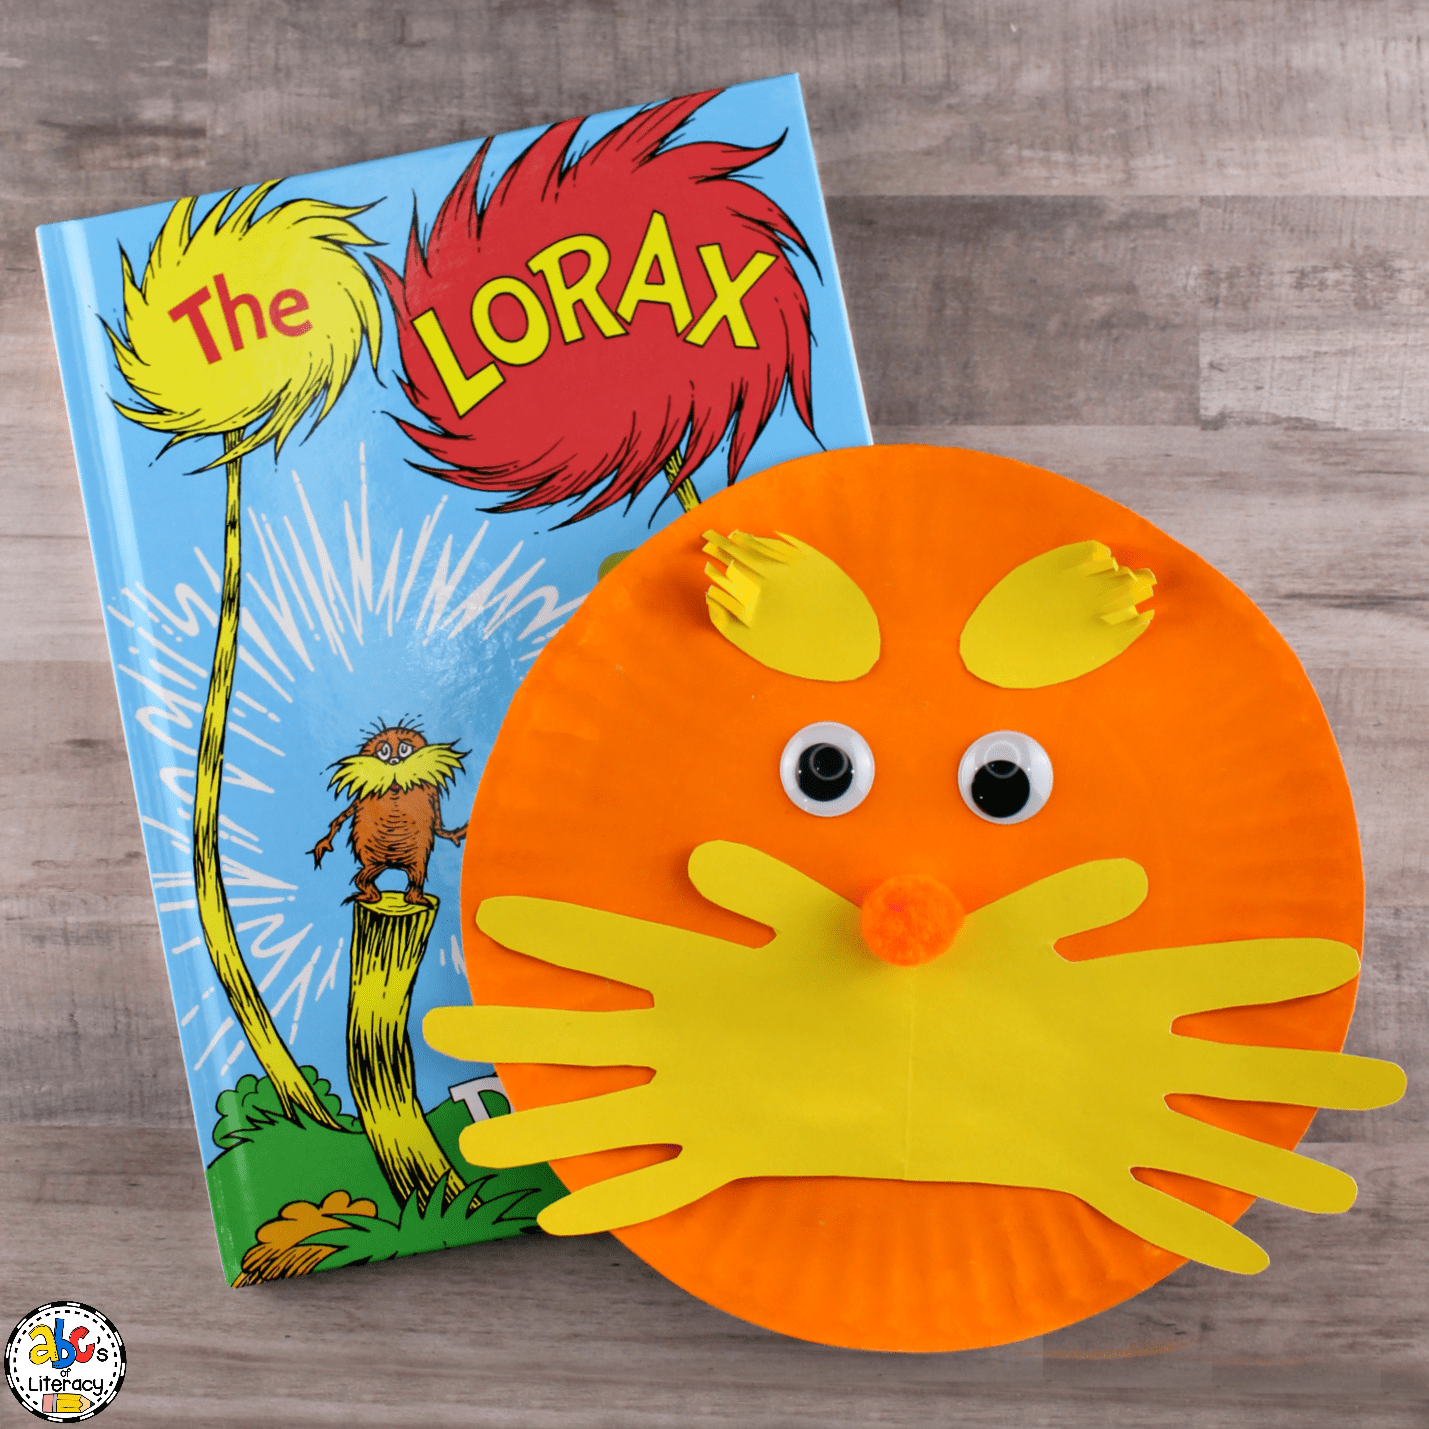 This is an image of Printable Lorax Mustache and Eyebrows in the lorax's